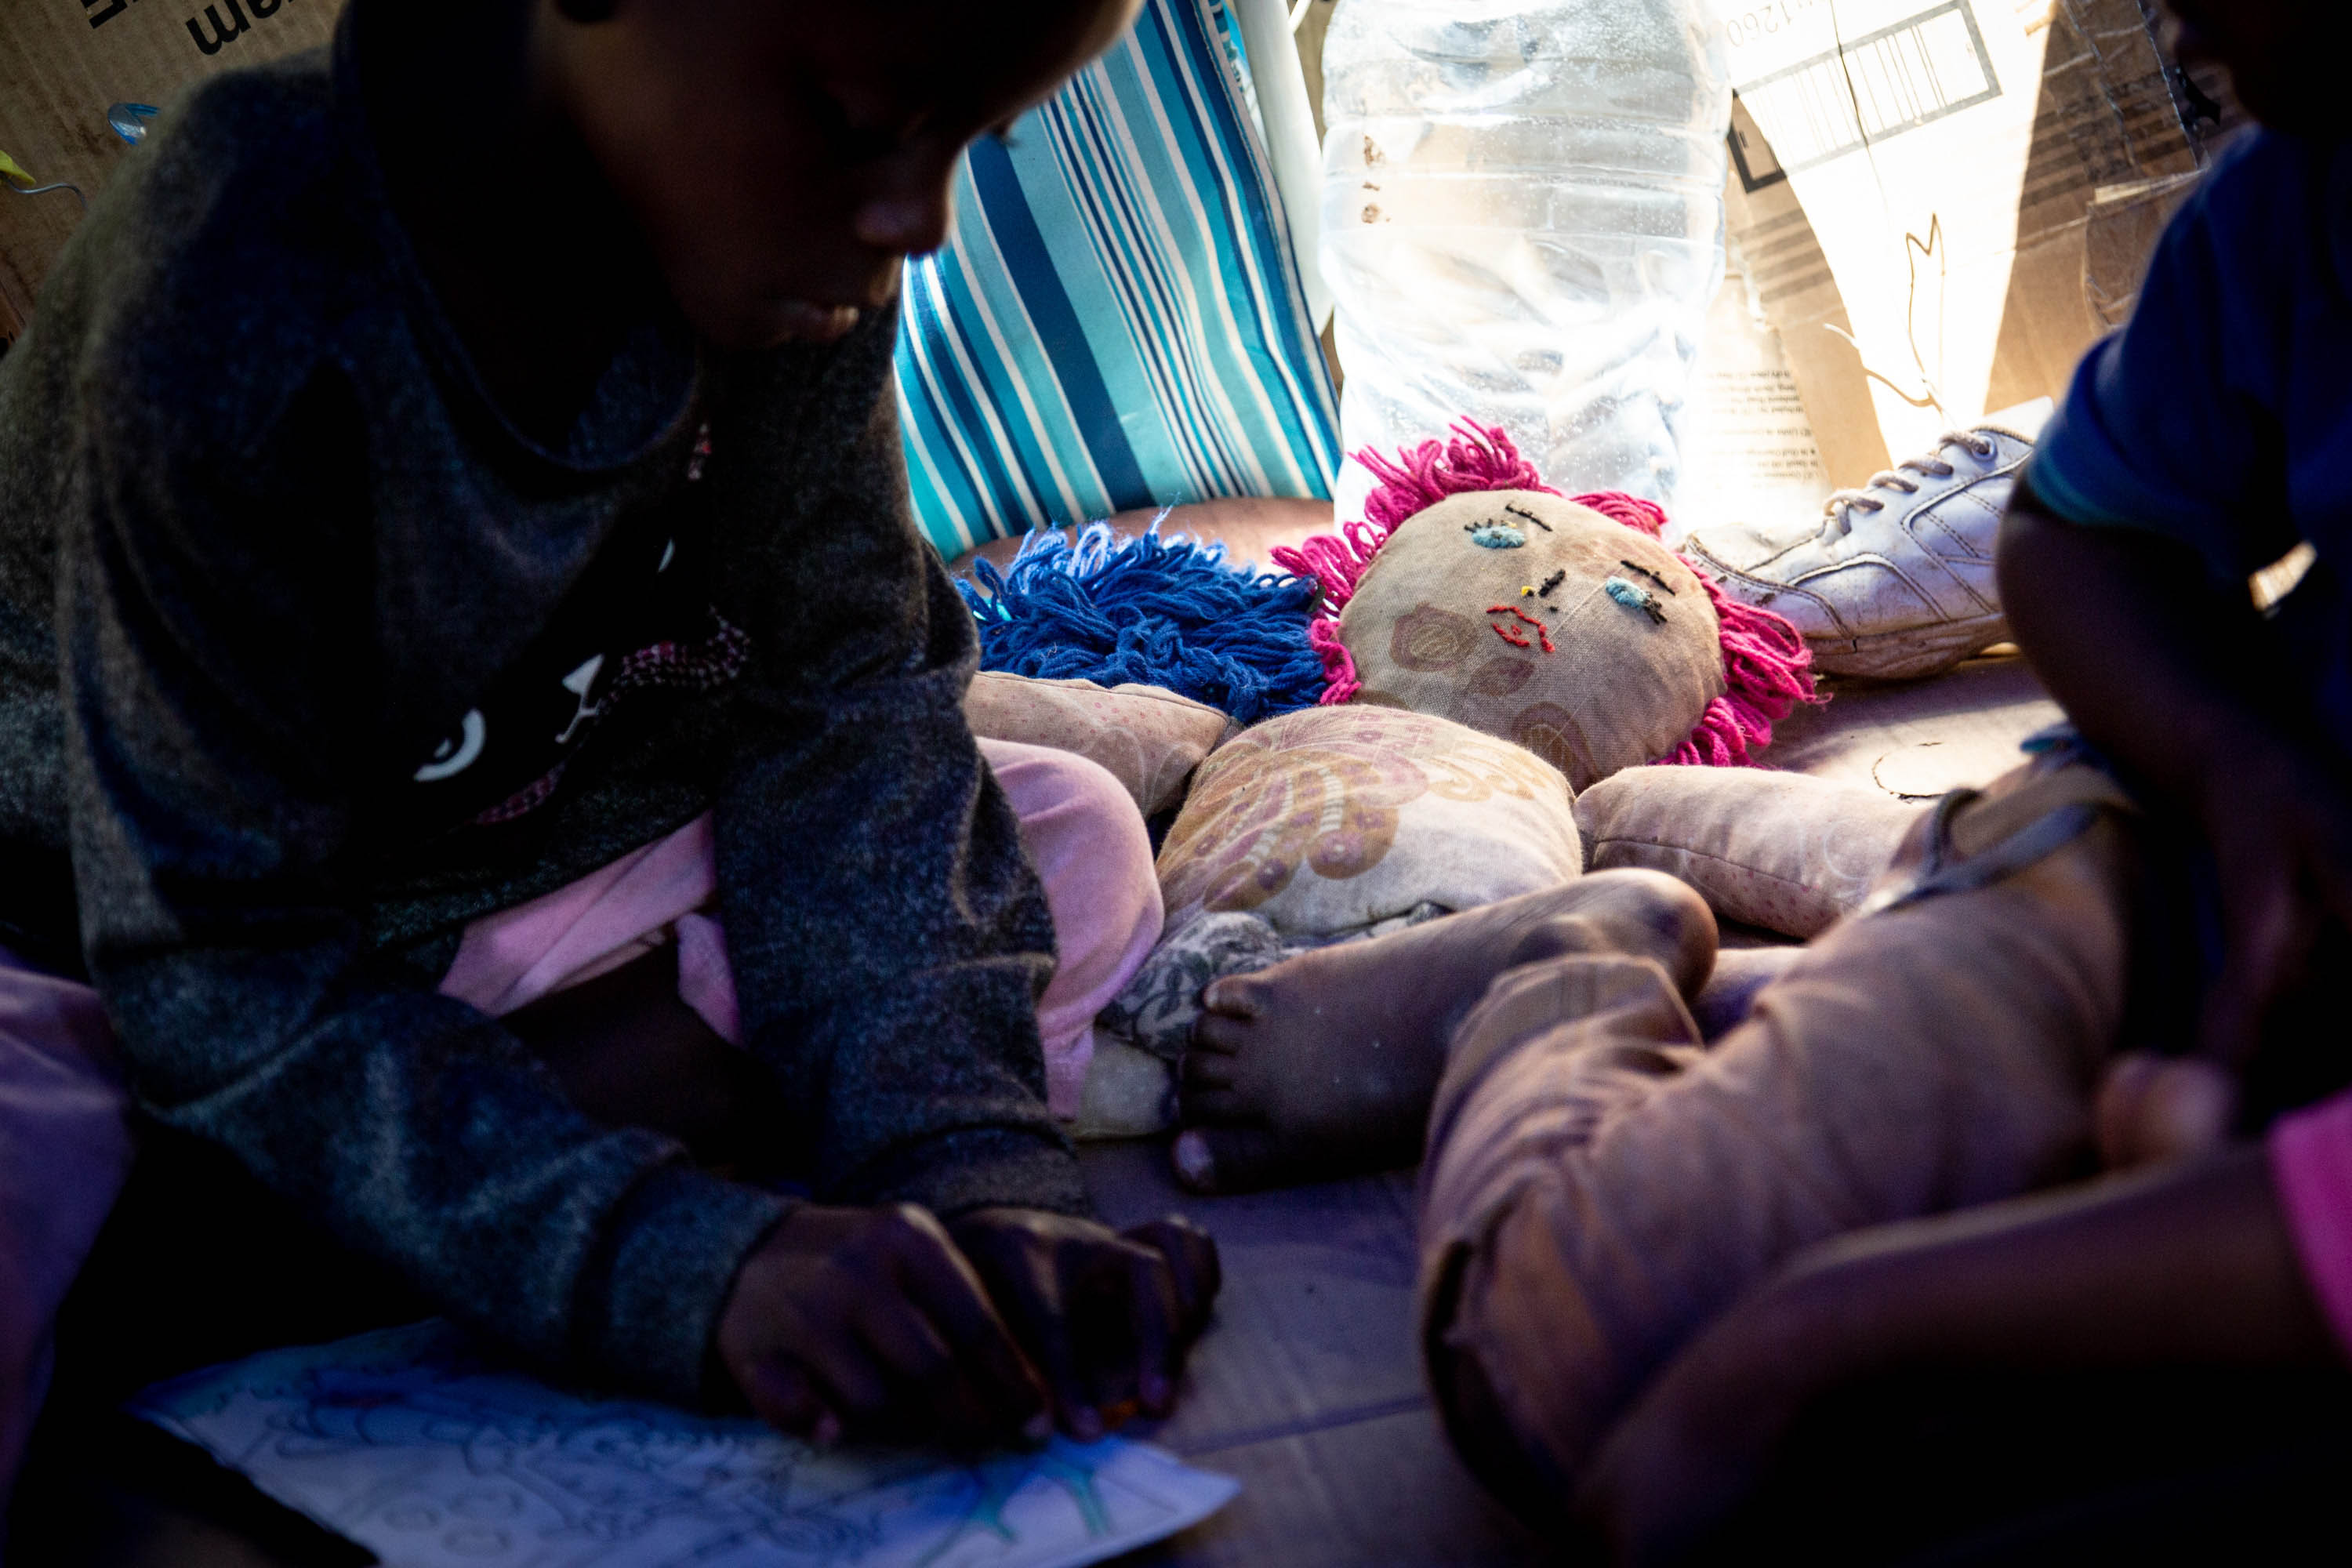 6 November 2019: Seven-year-old Shagayo Kolanda with a sibling in their mother Beatrice Faida's tent at the makeshift refugee camp in Tshwane. Born in the Democratic Republic of the Congo but without DRC papers, Shagayo has not had any schooling in South Africa.